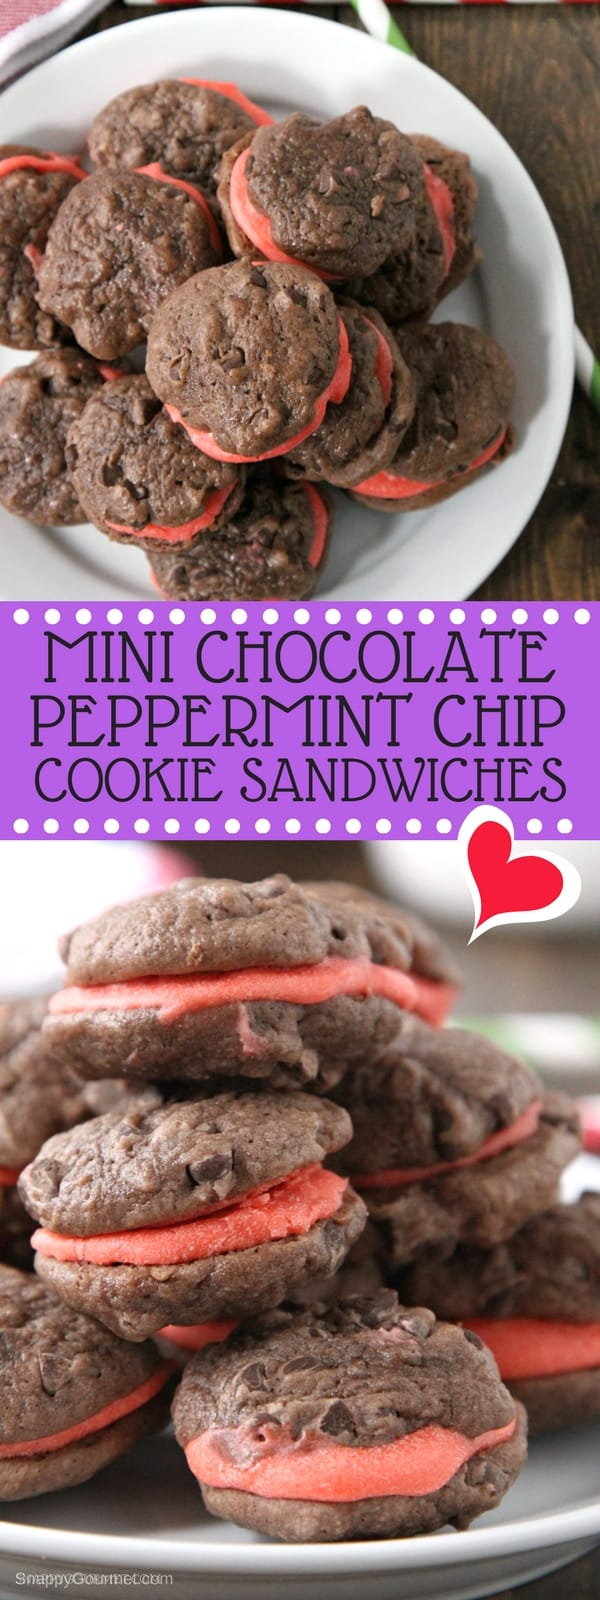 Mini Chocolate Peppermint Chip Cookie Sandwiches Recipe - easy chocolate and peppermint Christmas cookies! SnappyGourmet.com